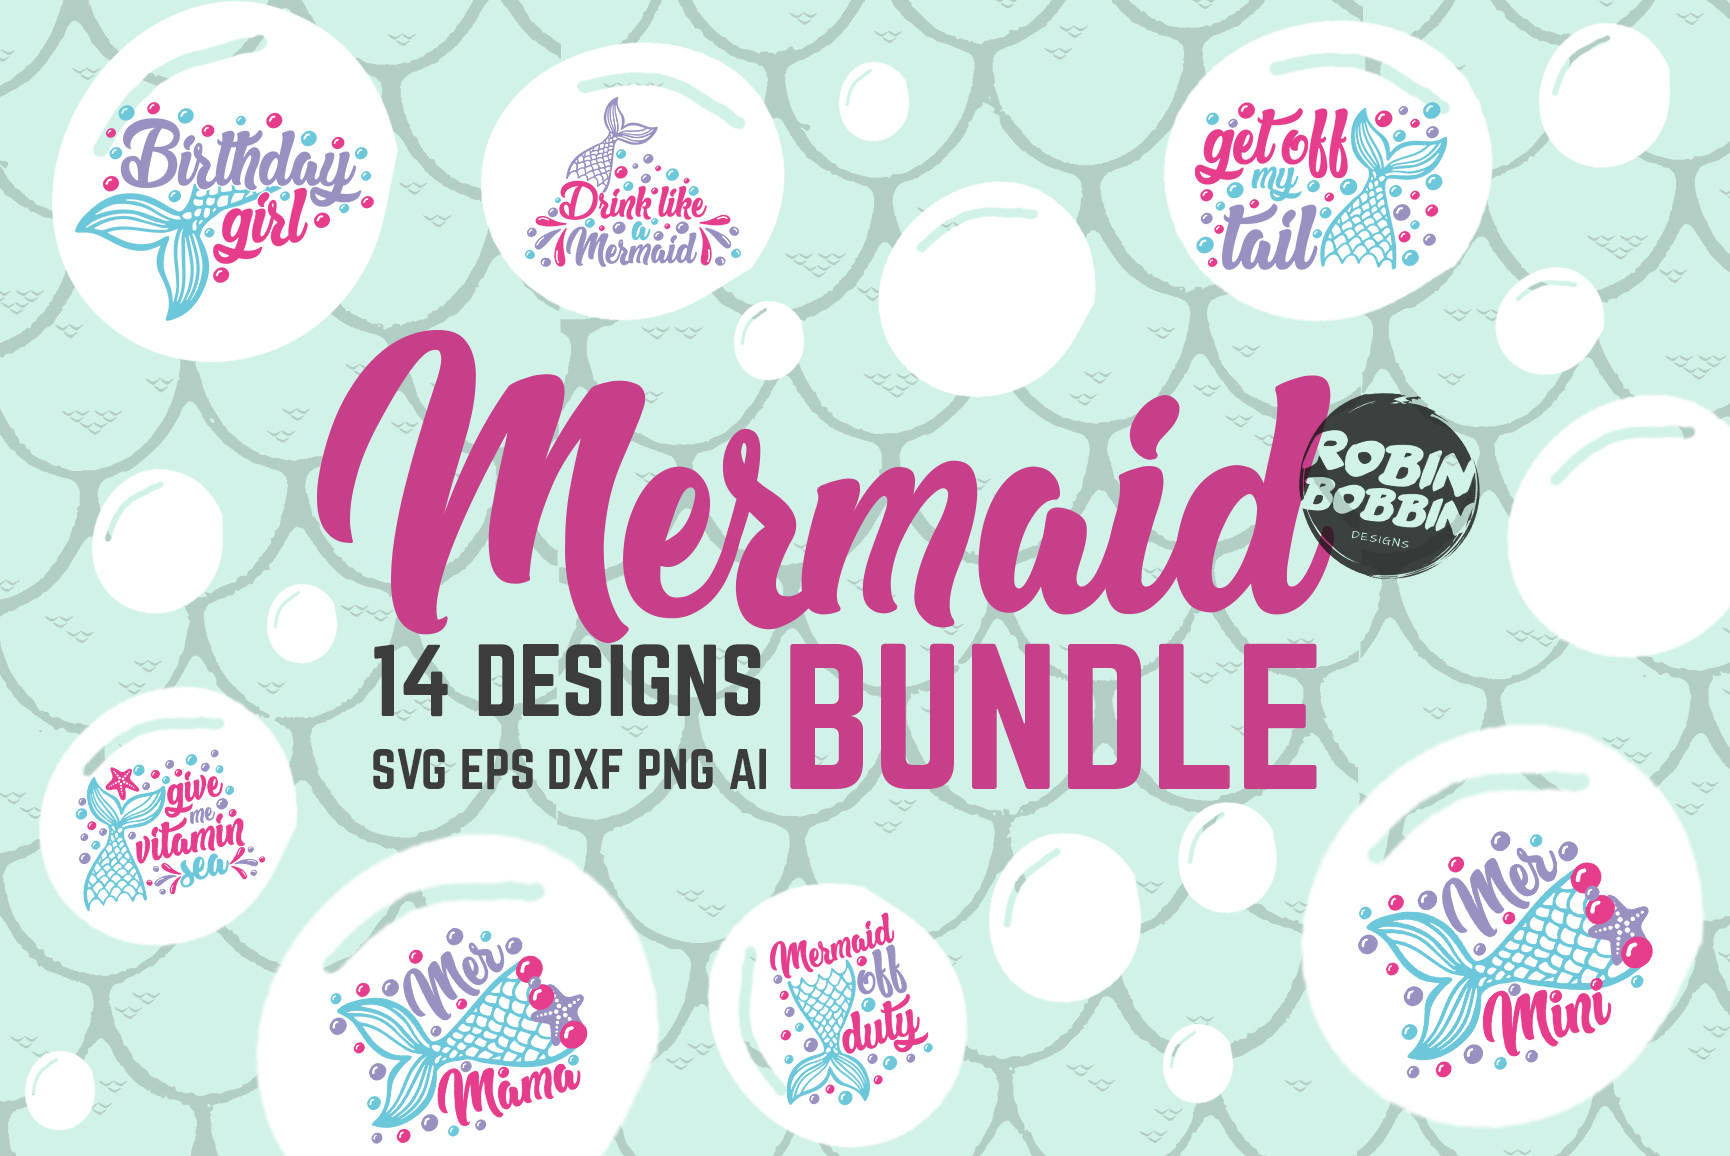 Mega SVG Bundle - Cut Files Bundle - Mega Bundle Over 700 example image 29